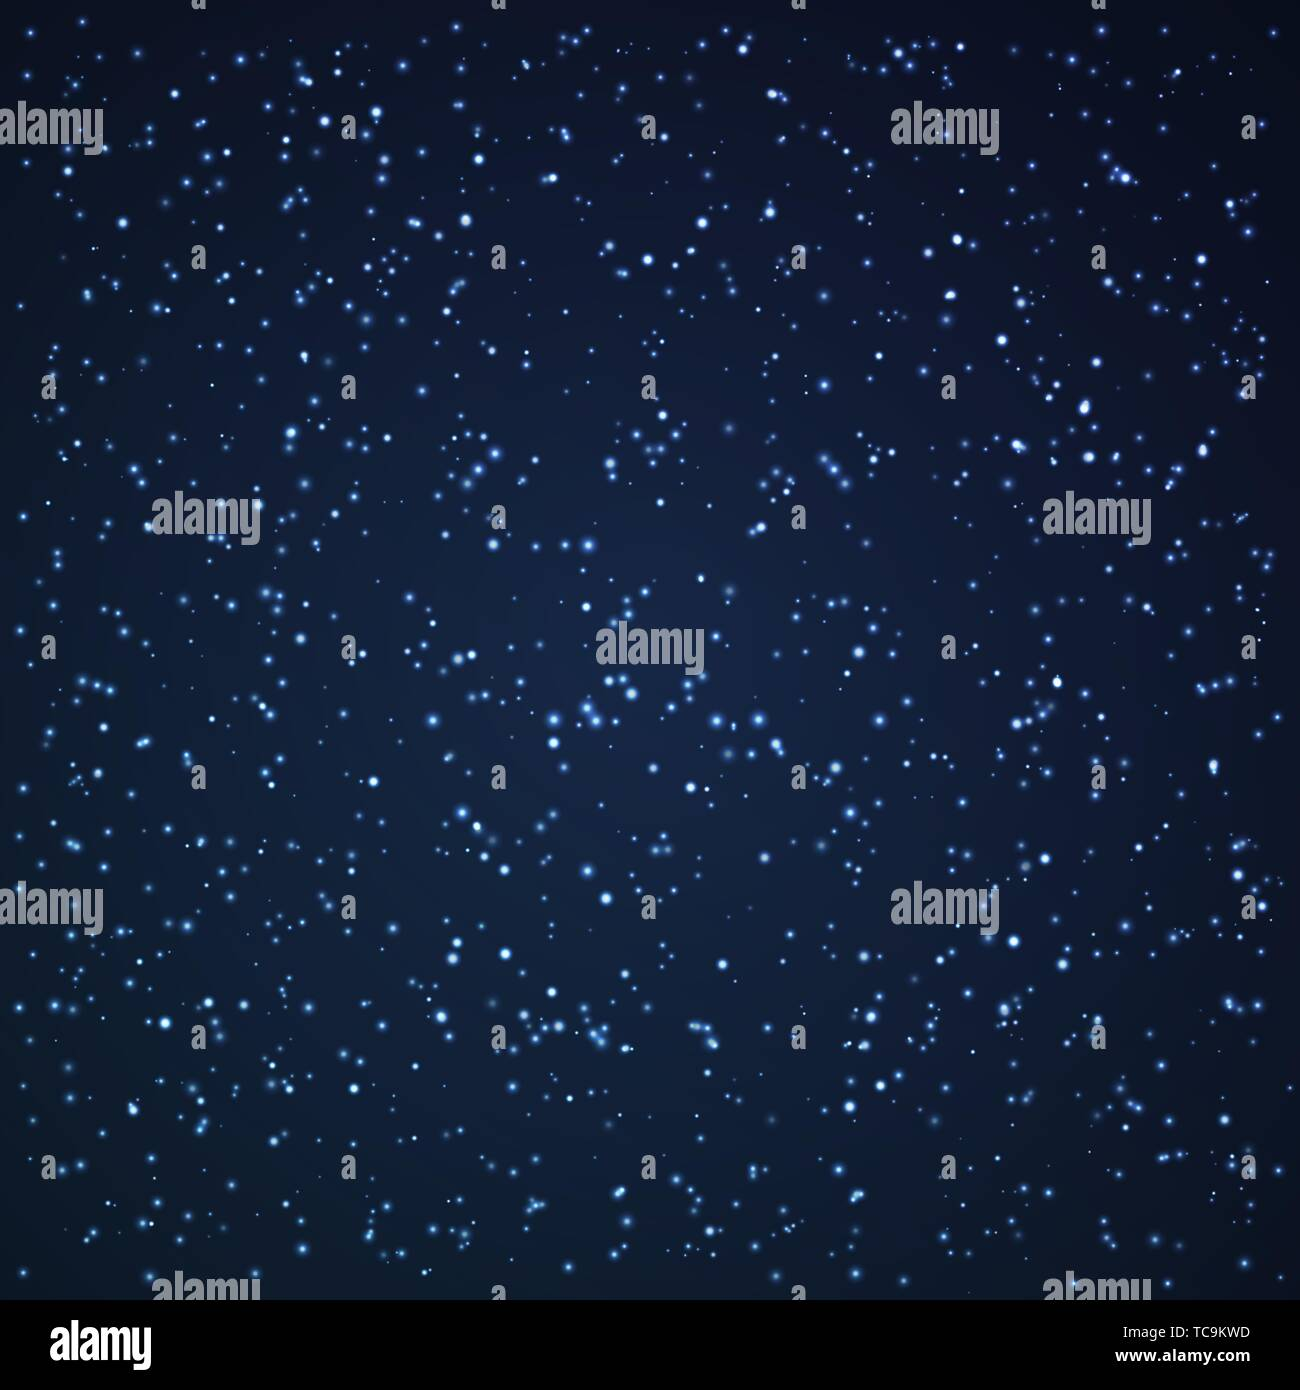 Background with shooting stars. Vector illustration. Space pattern - Stock Vector